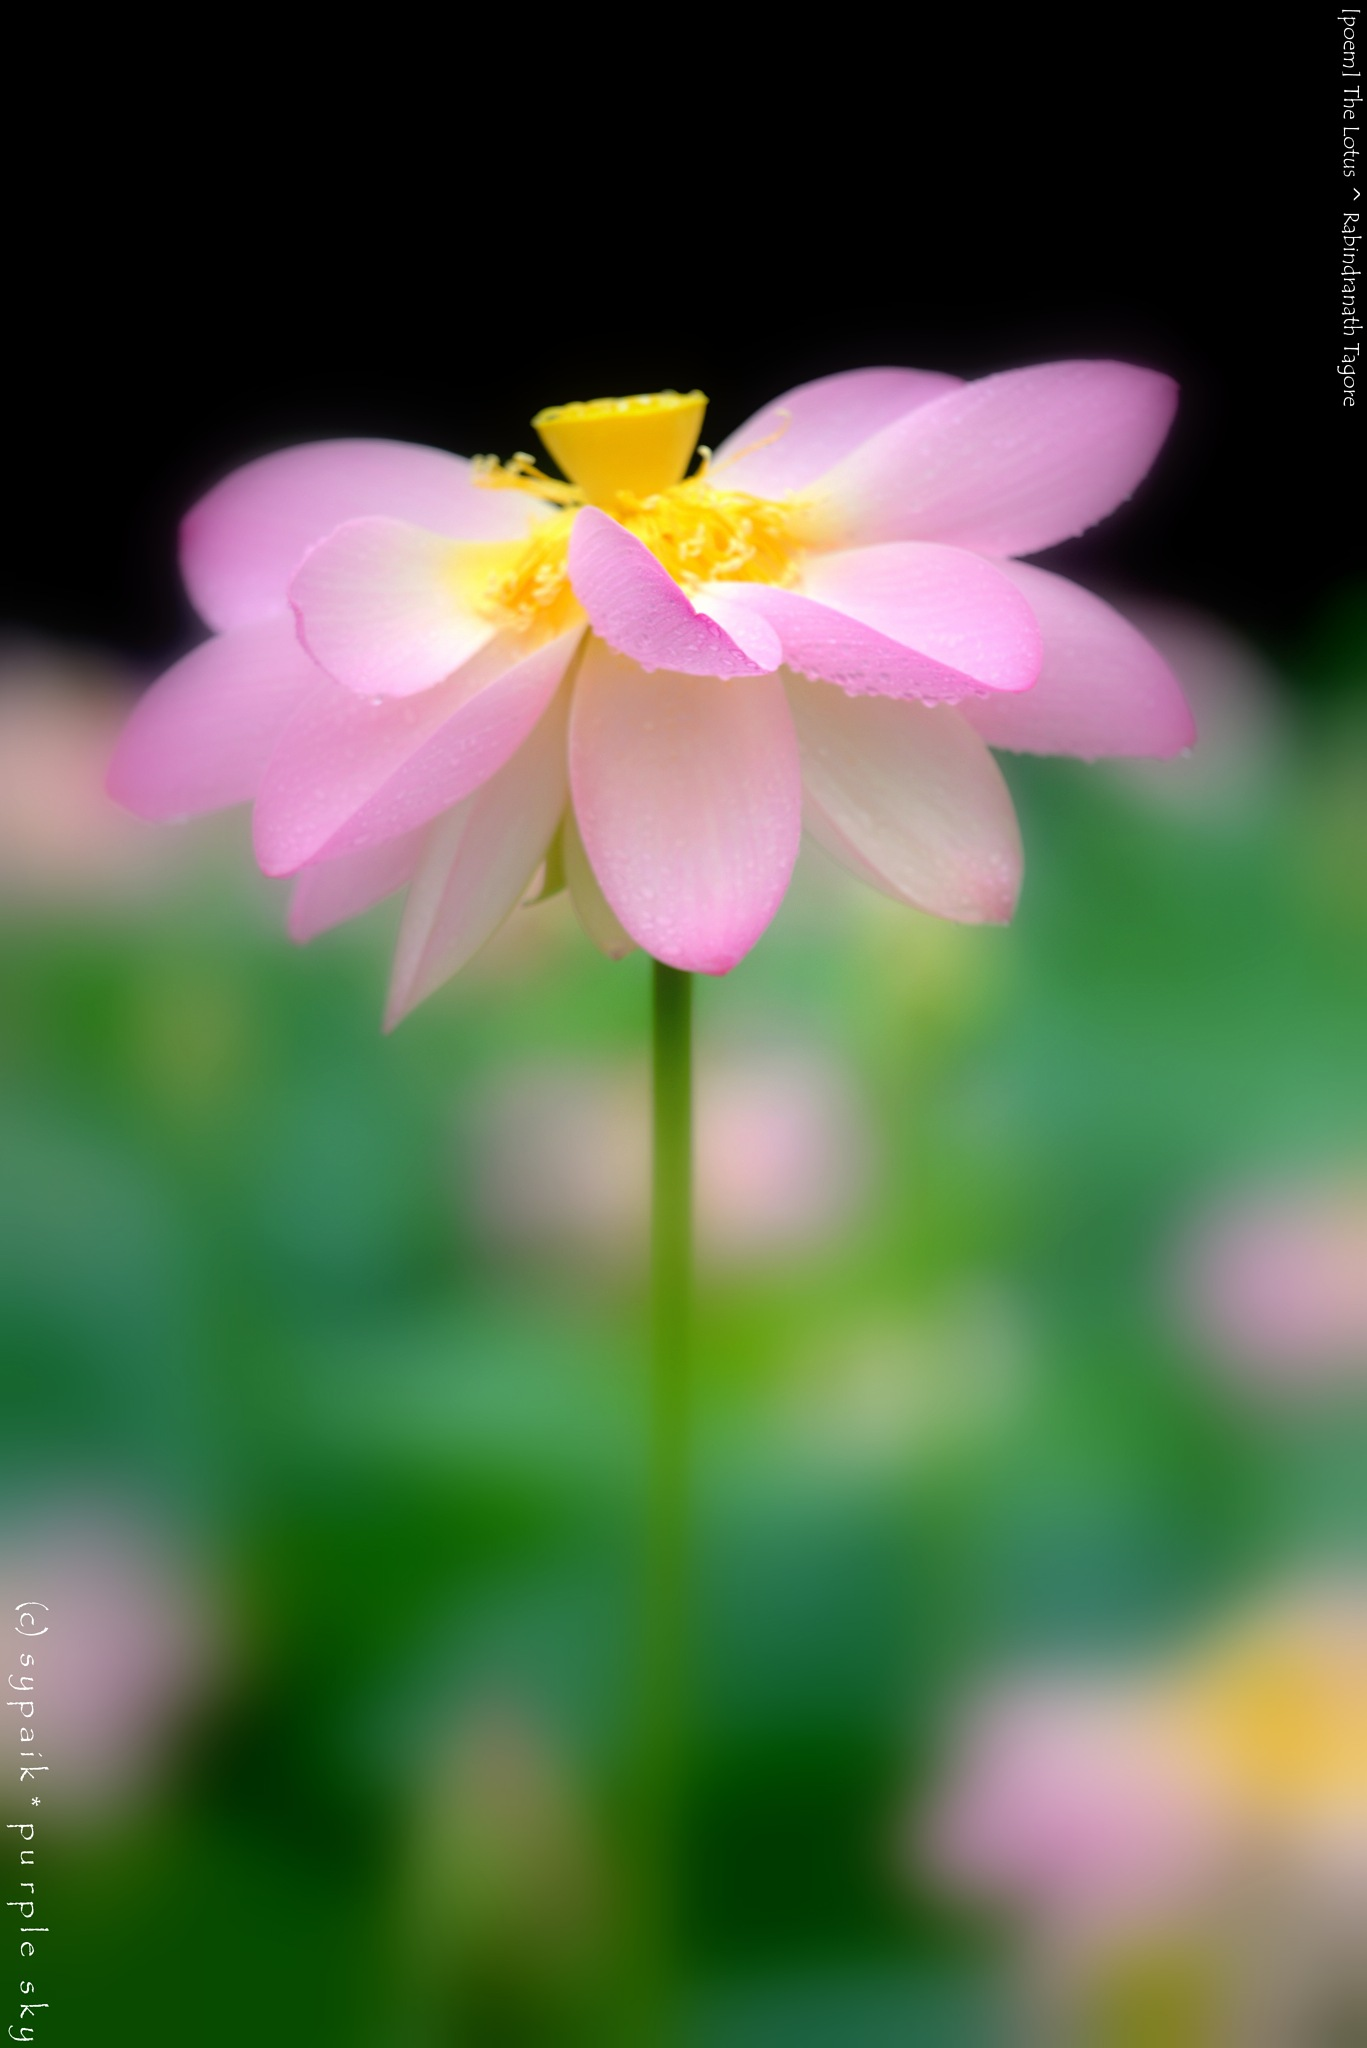 The Lotus ** by sypaik